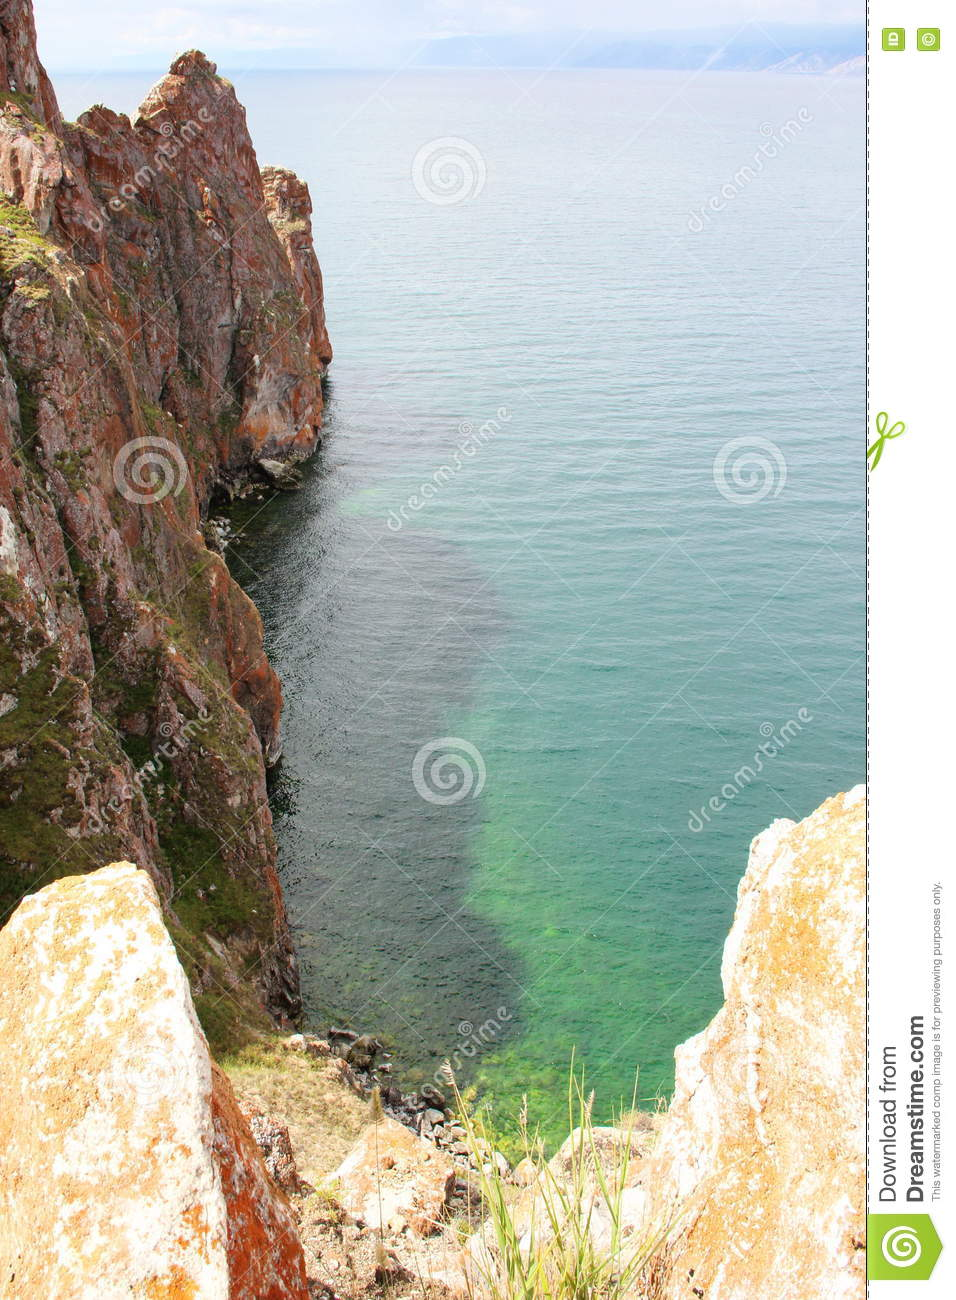 Beautiful nature of lake in the summer, high mountains and clear green, purple water of Lake Baikal, Siberia, Russia - landscape